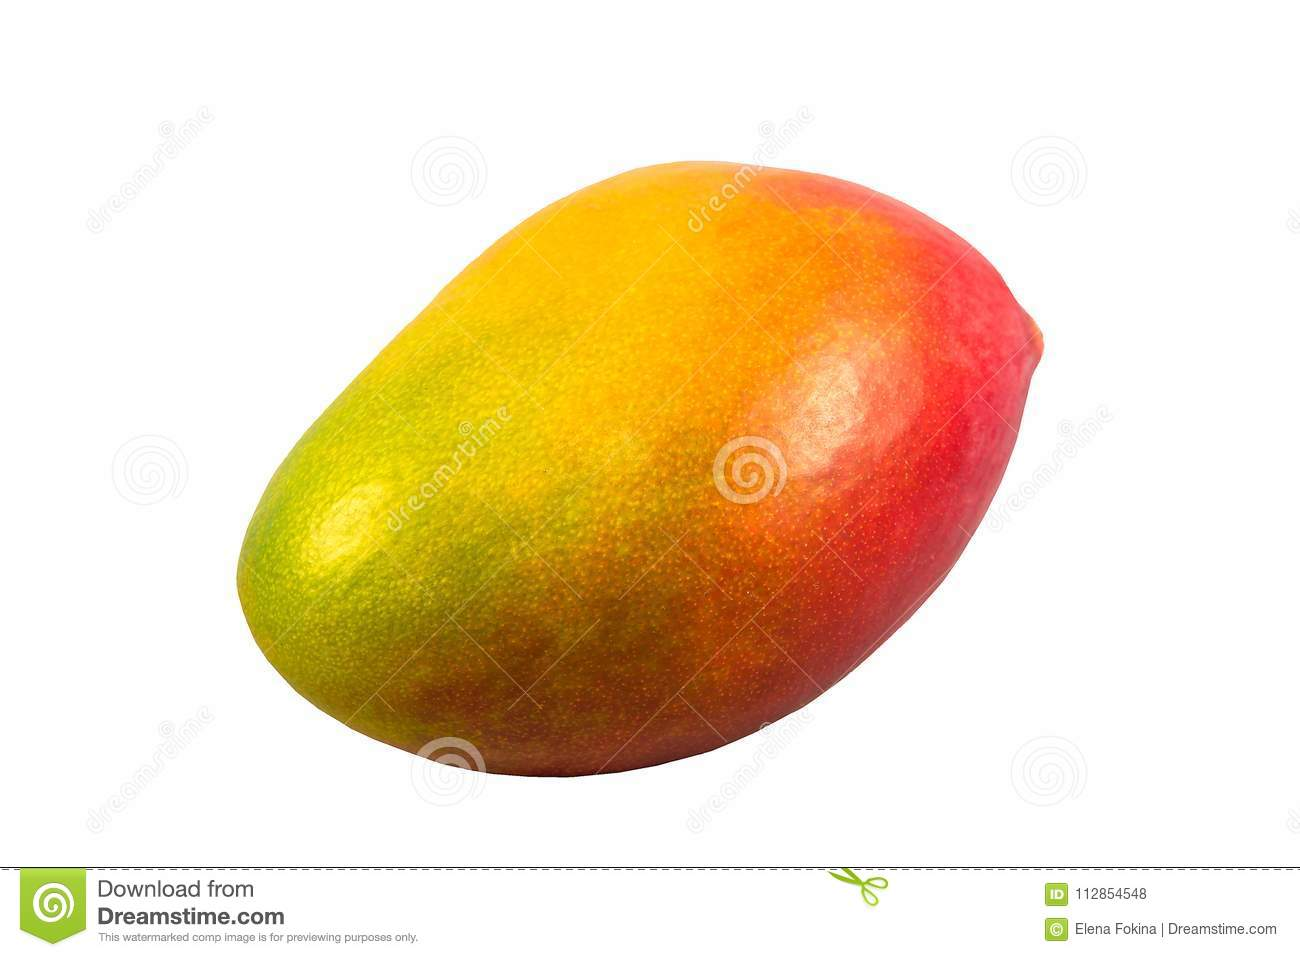 Ripe red and yellow mango isolated on a white background